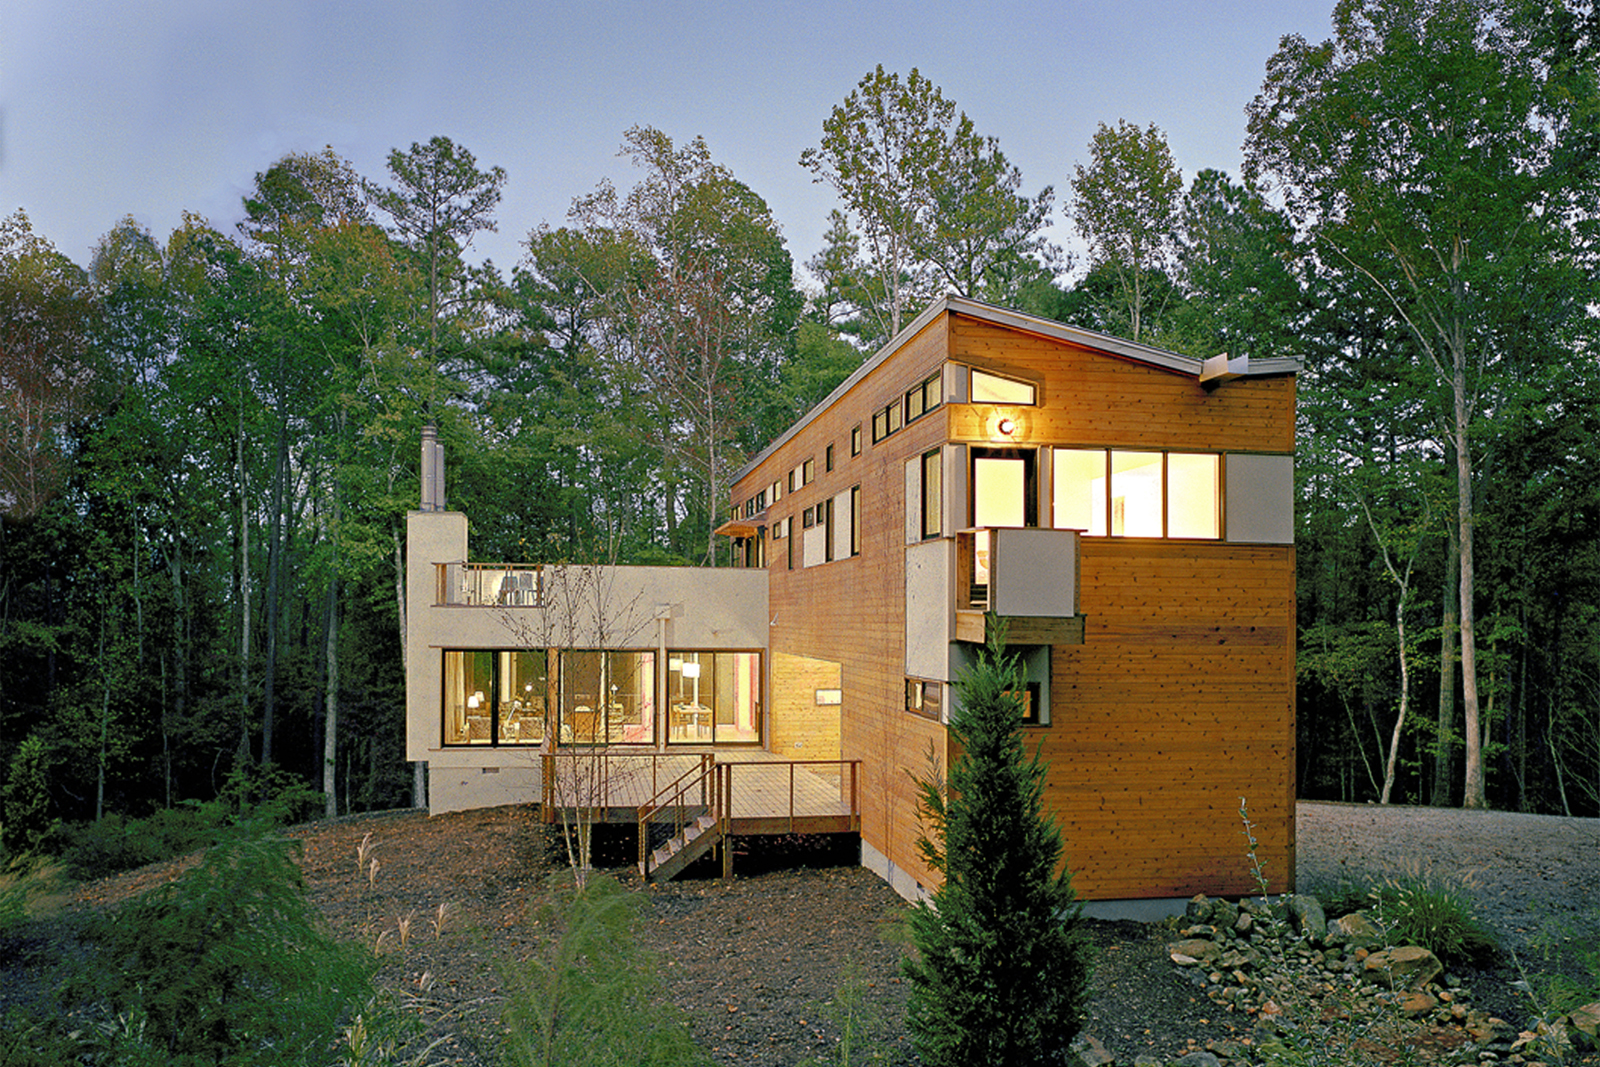 01-res4-resolution-4-architecture-modern-modular-house-prefab-dwell-home-exterior.jpg